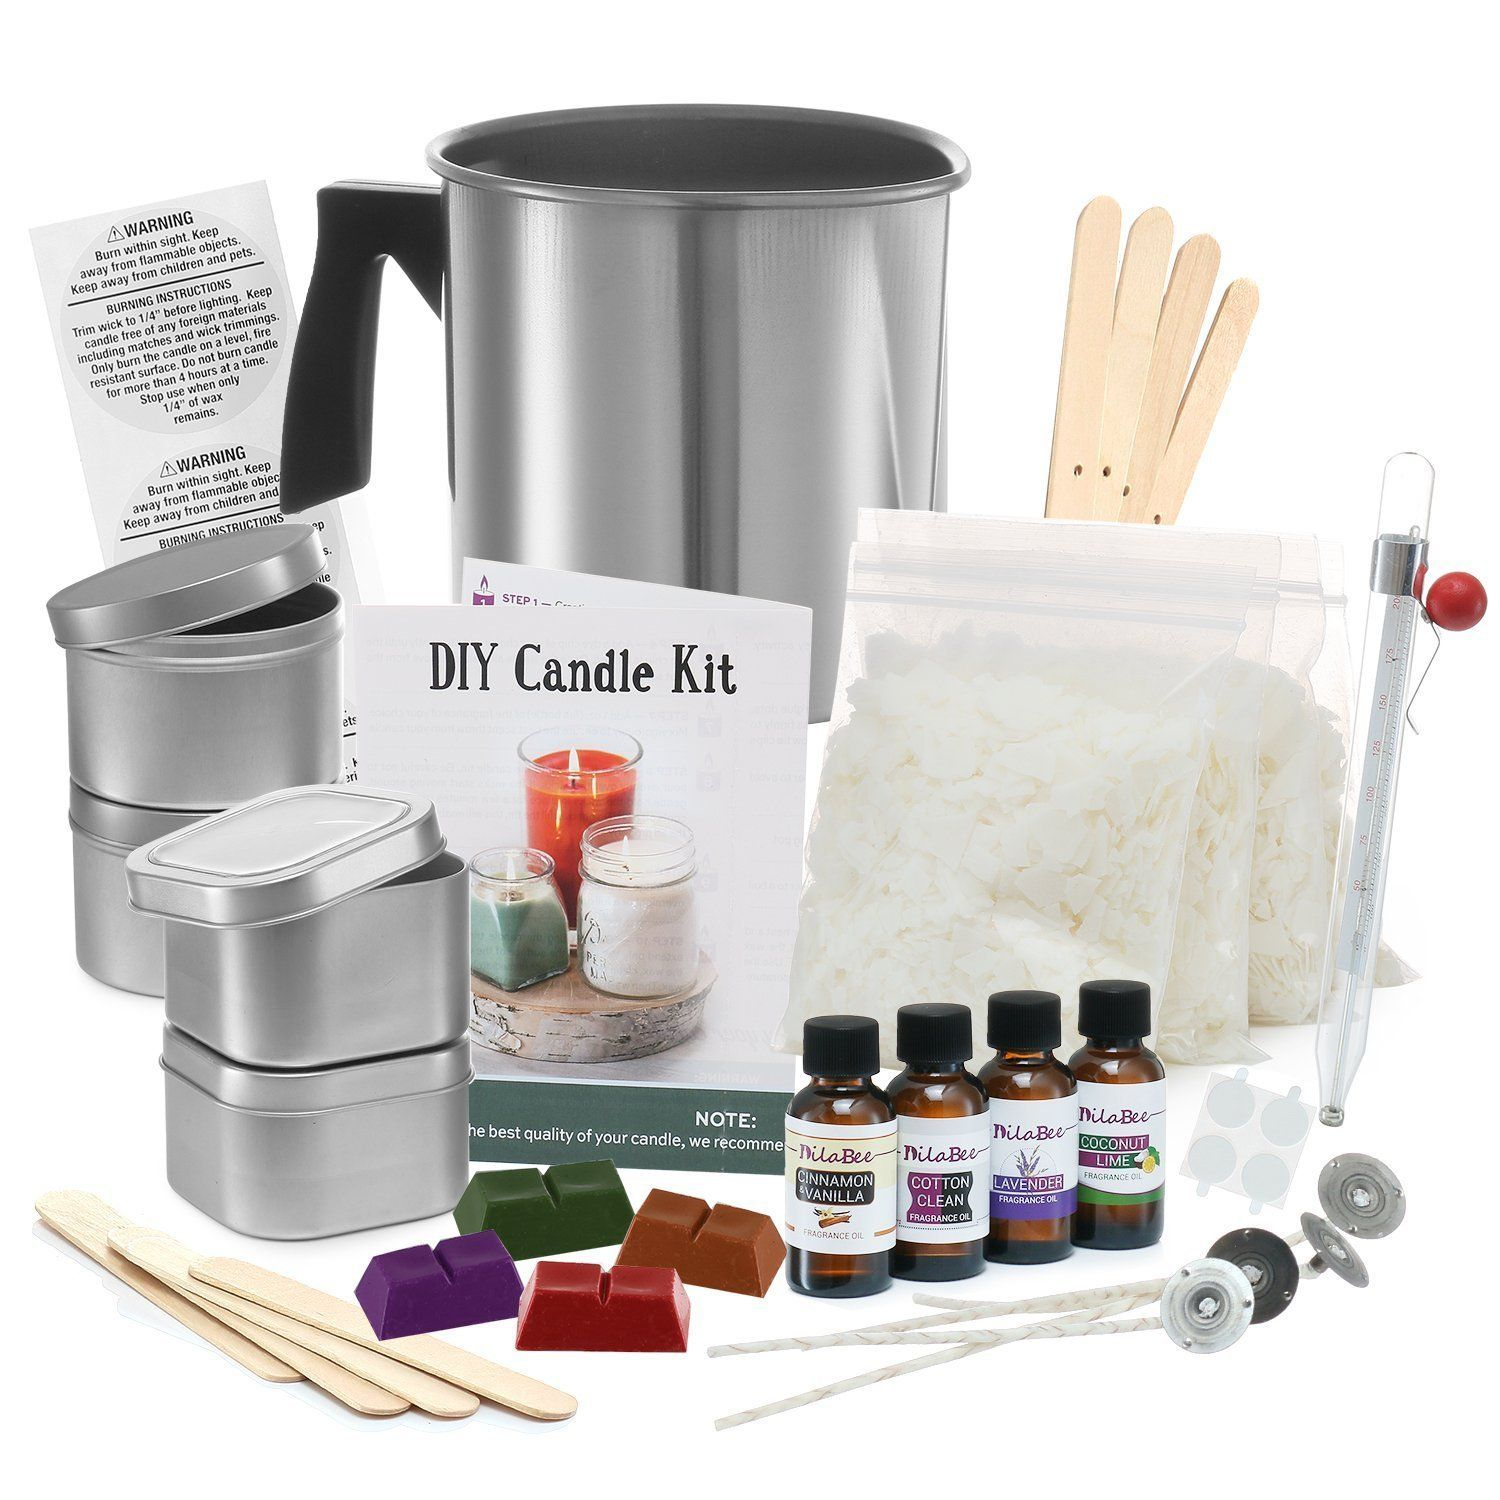 Complete DIY Candle Making Kit Supplies – Create Large